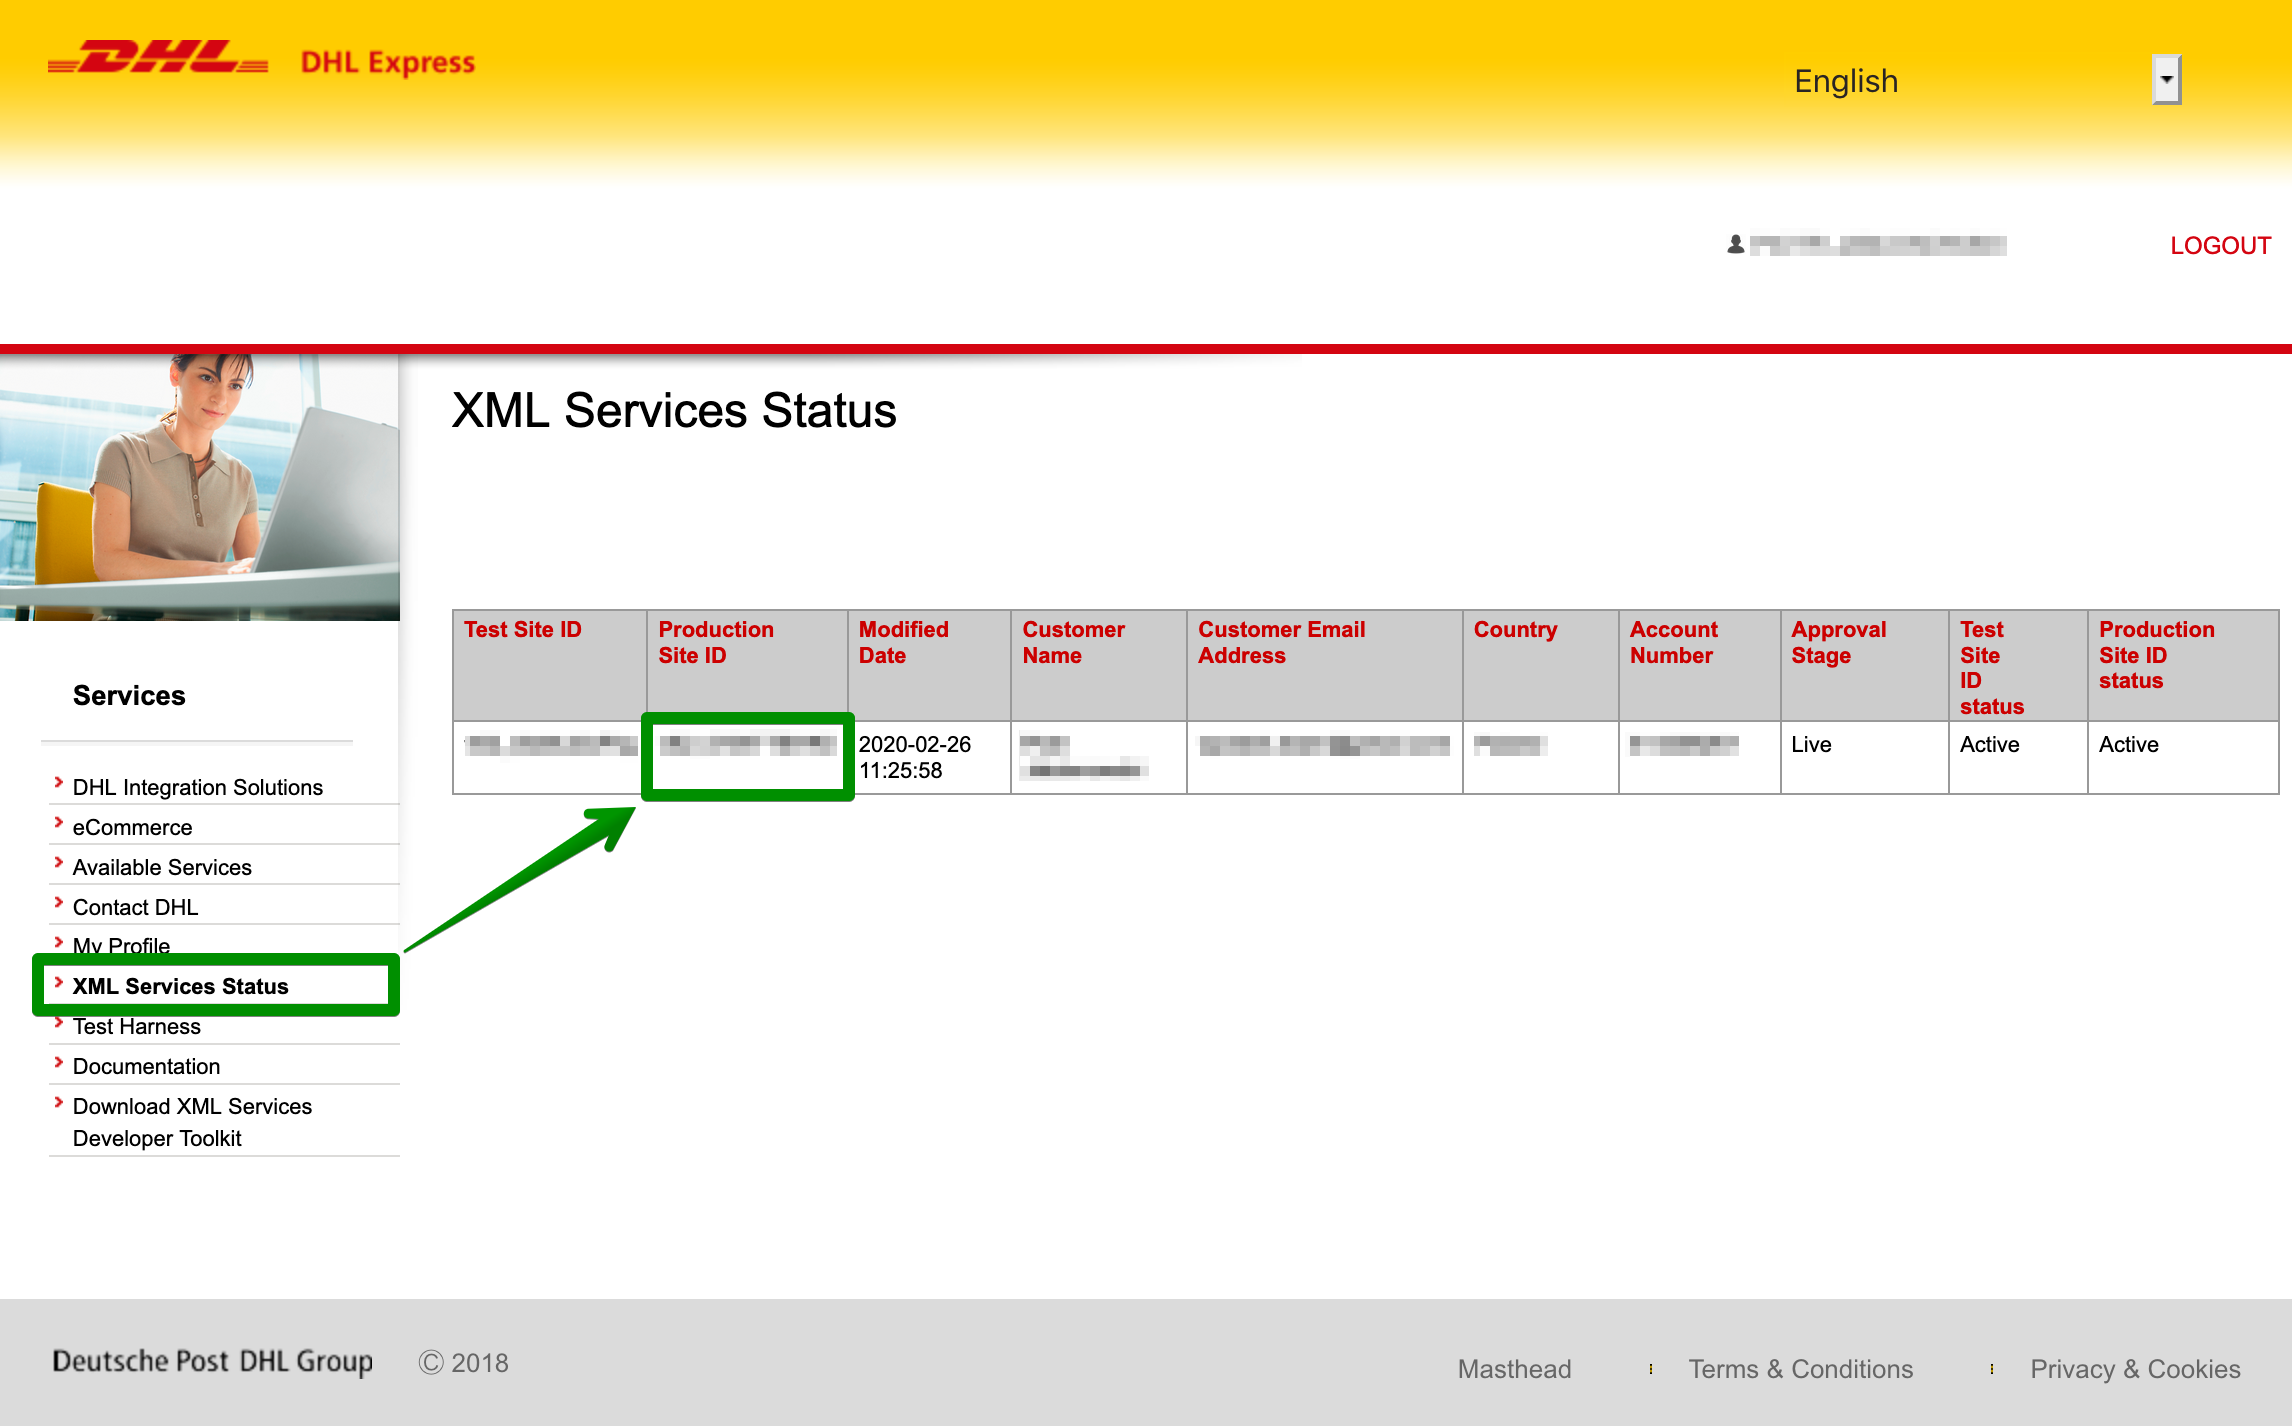 DHL Express - How to create an account? - DHL XML Services Status